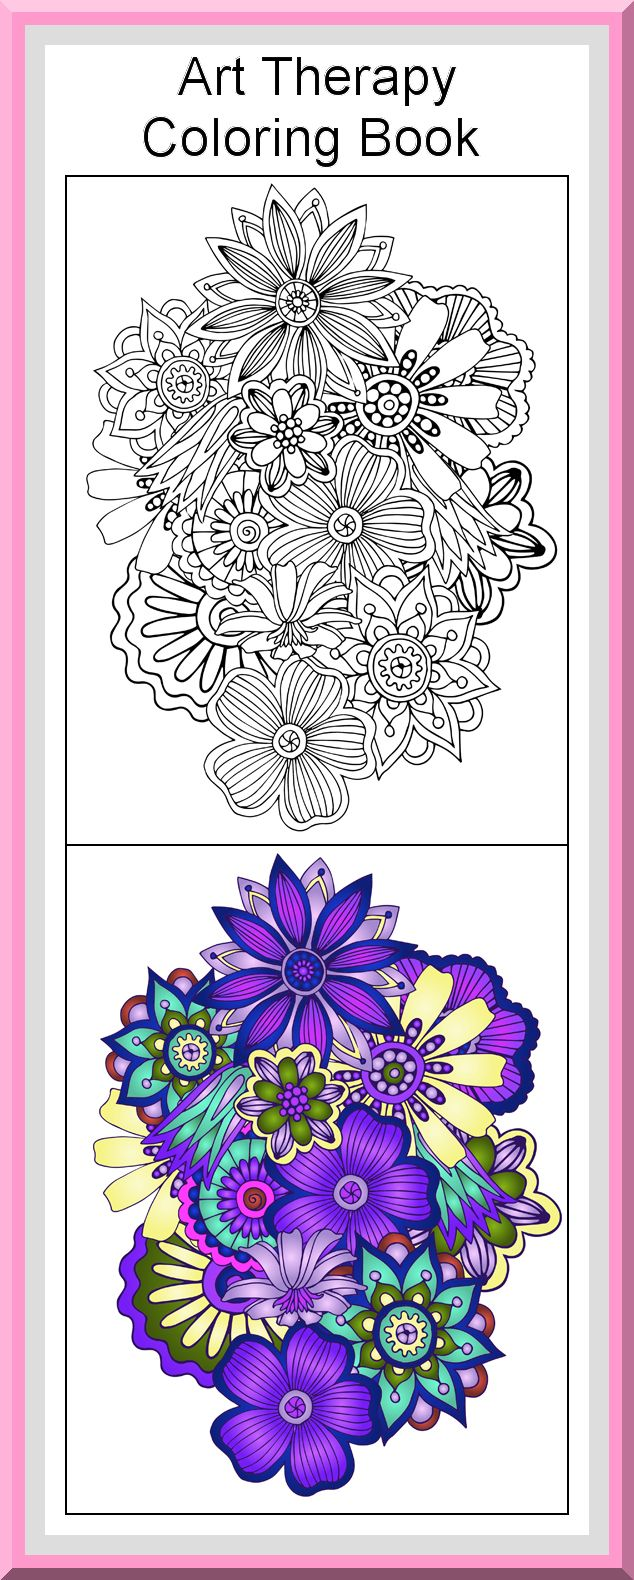 30 Printable Coloring Pages Outlines Color Examples Printable Download Pages Art Therapy Col Art Therapy Coloring Book Printable Art Therapy Coloring Pages